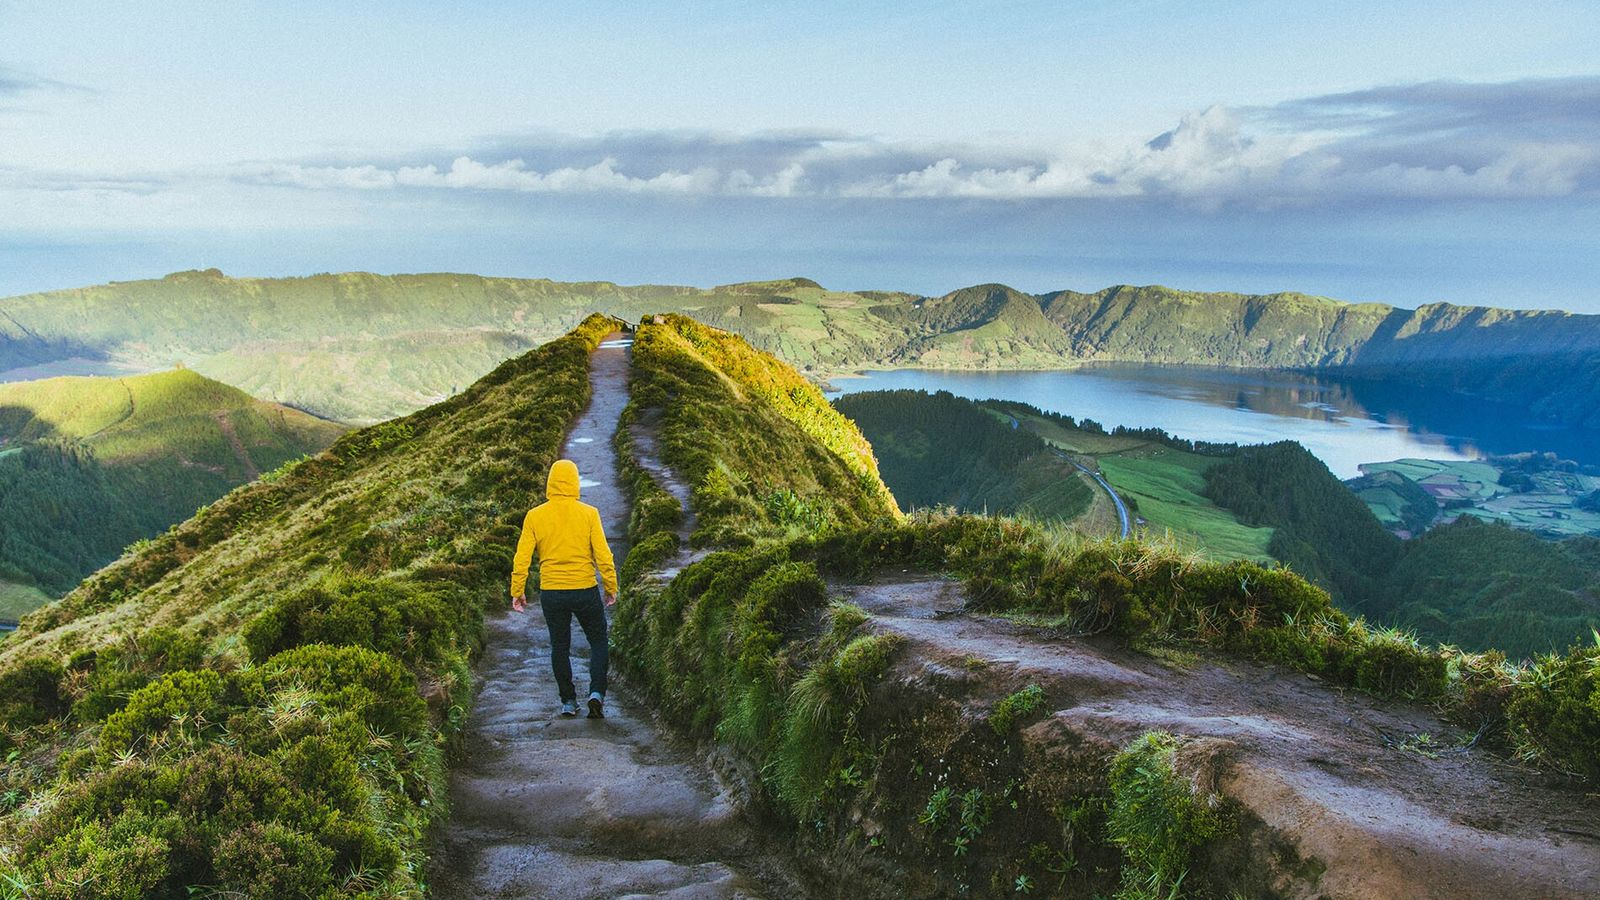 The Azores is known for its dark-sand beaches and beautiful serrated cliffs.